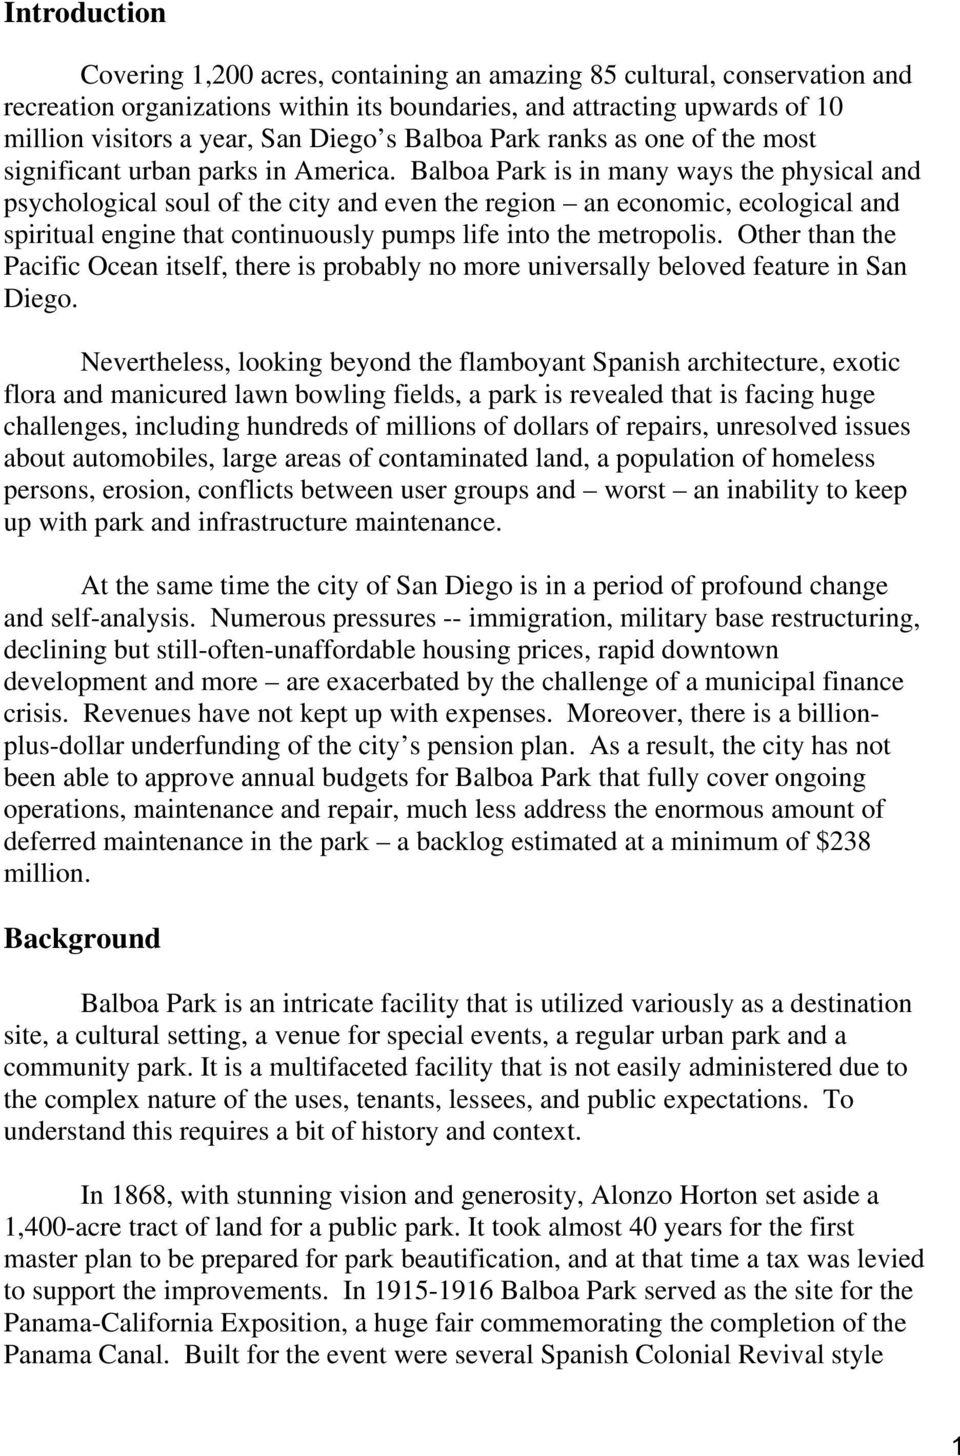 Balboa Park is in many ways the physical and psychological soul of the city and even the region an economic, ecological and spiritual engine that continuously pumps life into the metropolis.